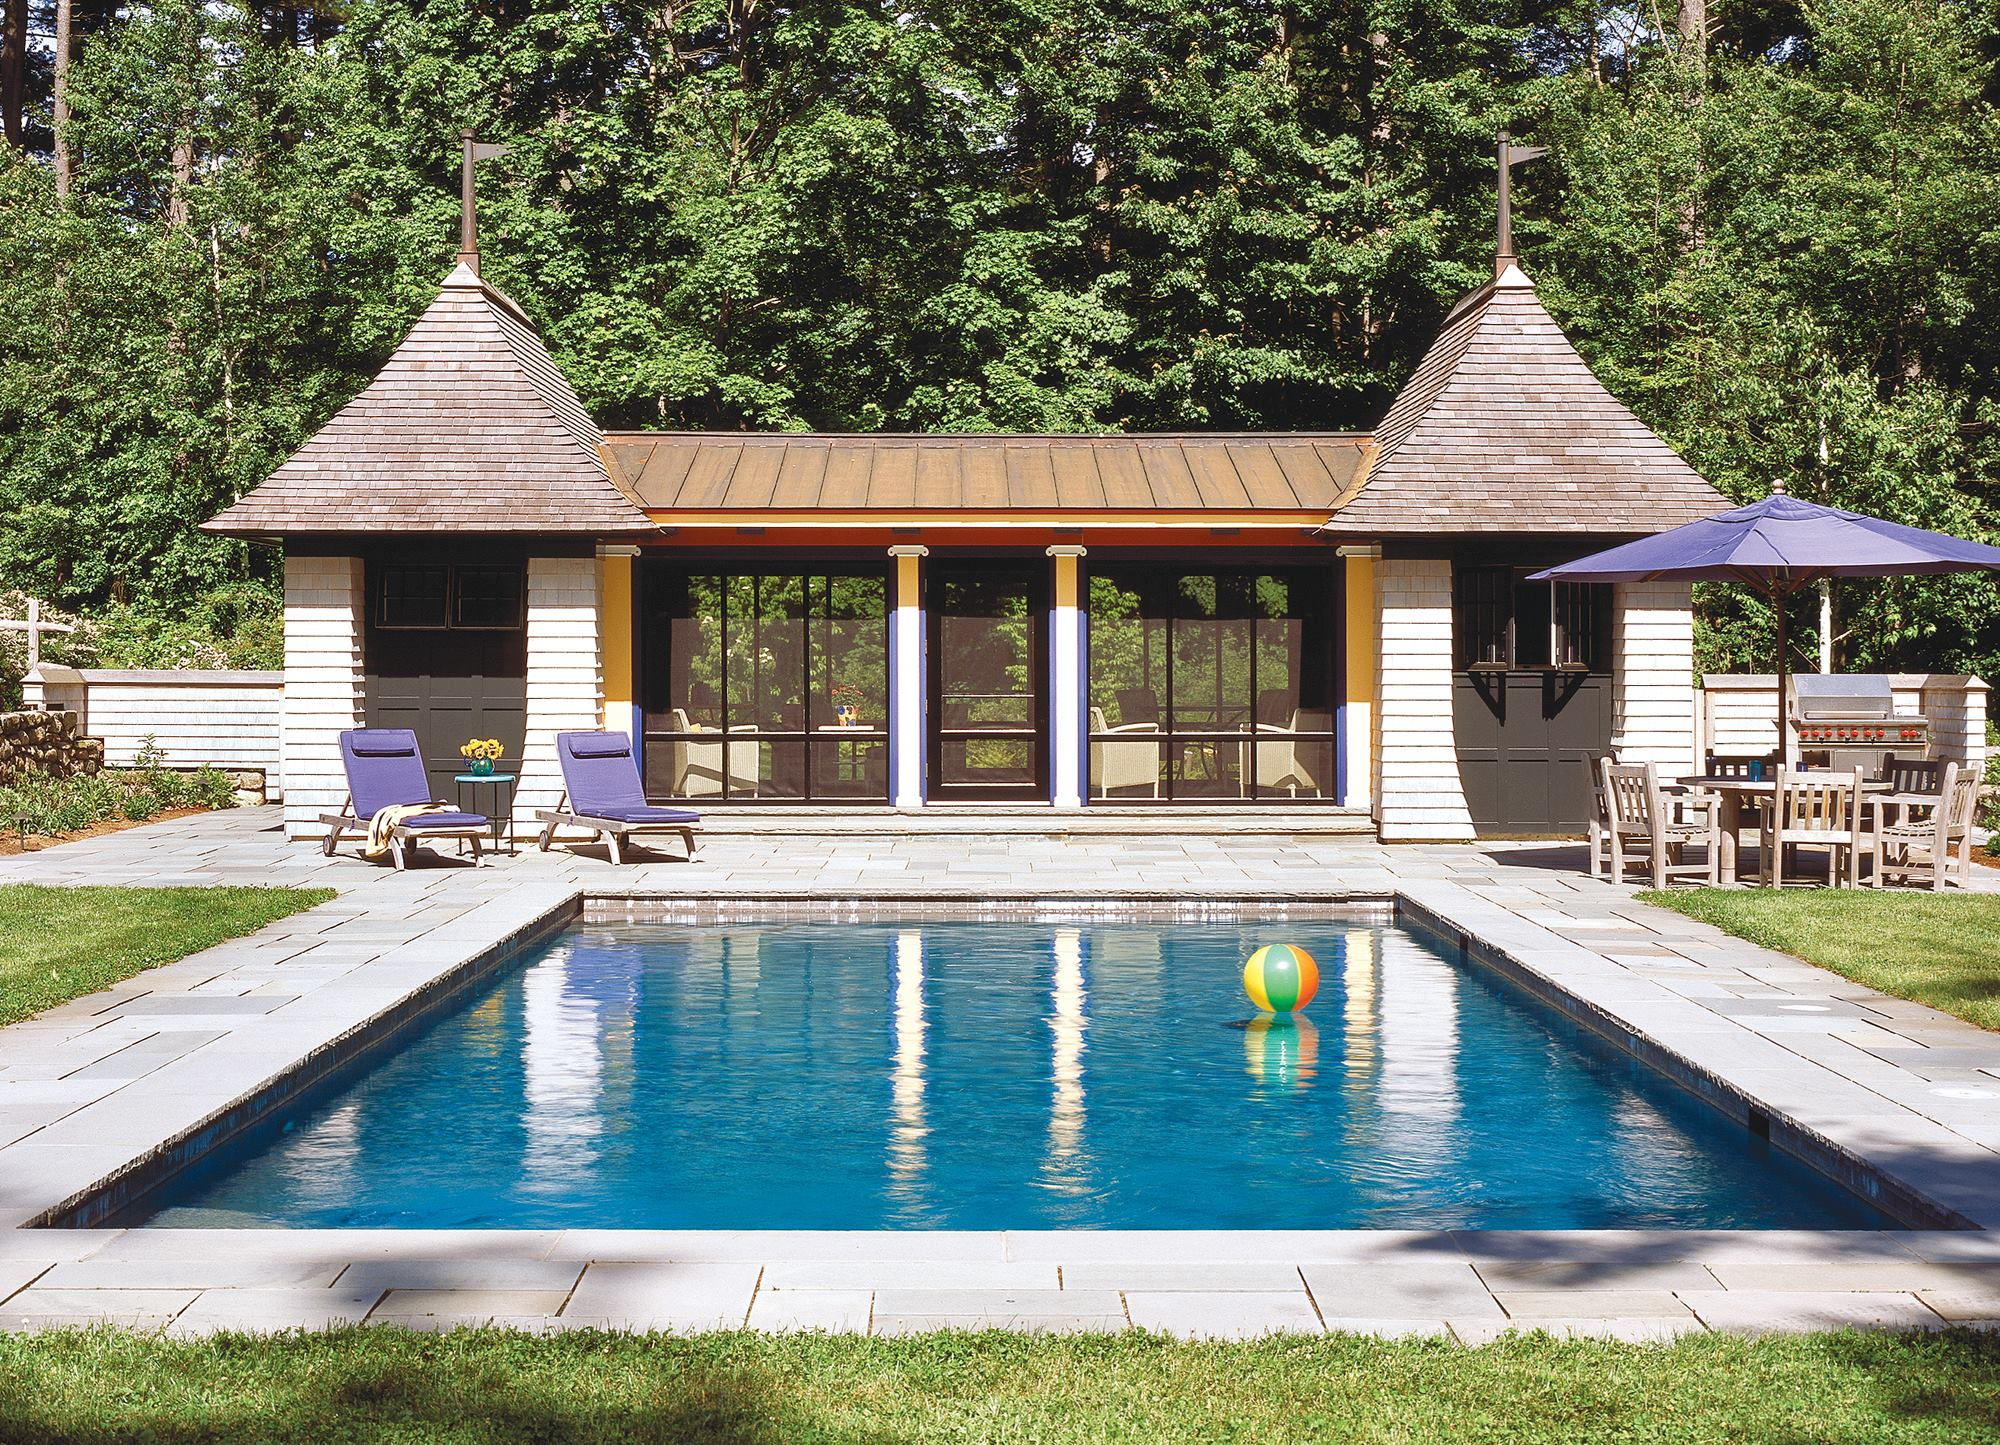 Pool houses custom home magazine design vacation for Pool house plans